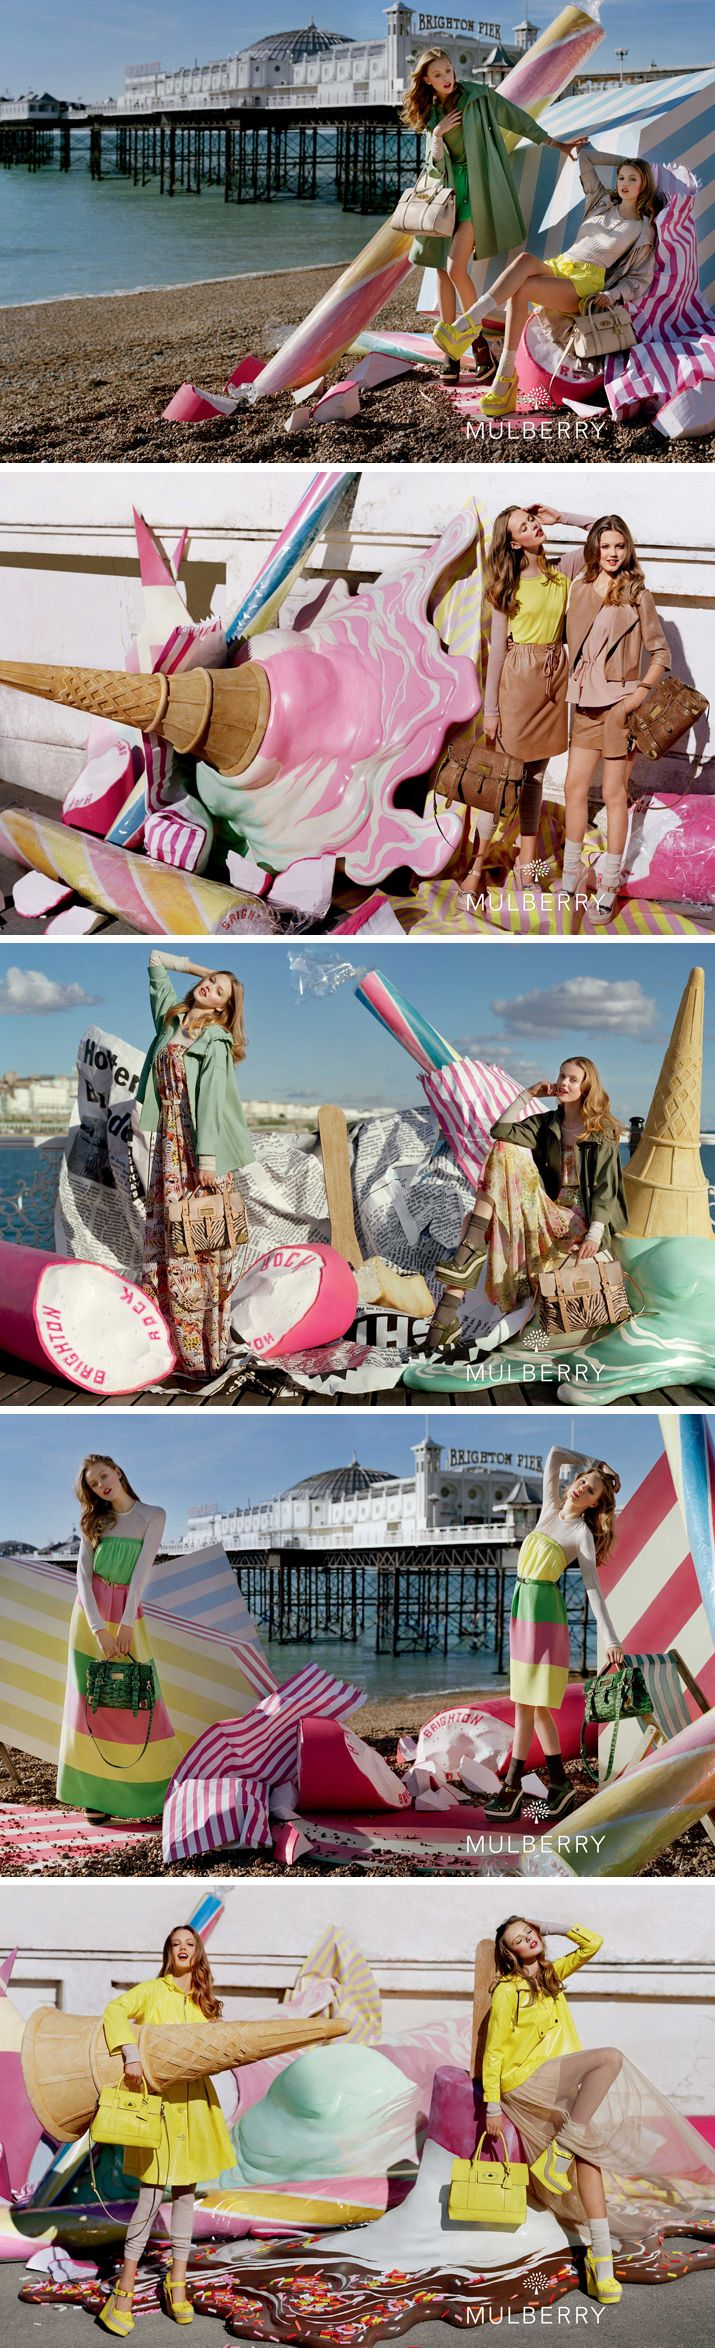 Mulberry-SS12-Ad-Campaign